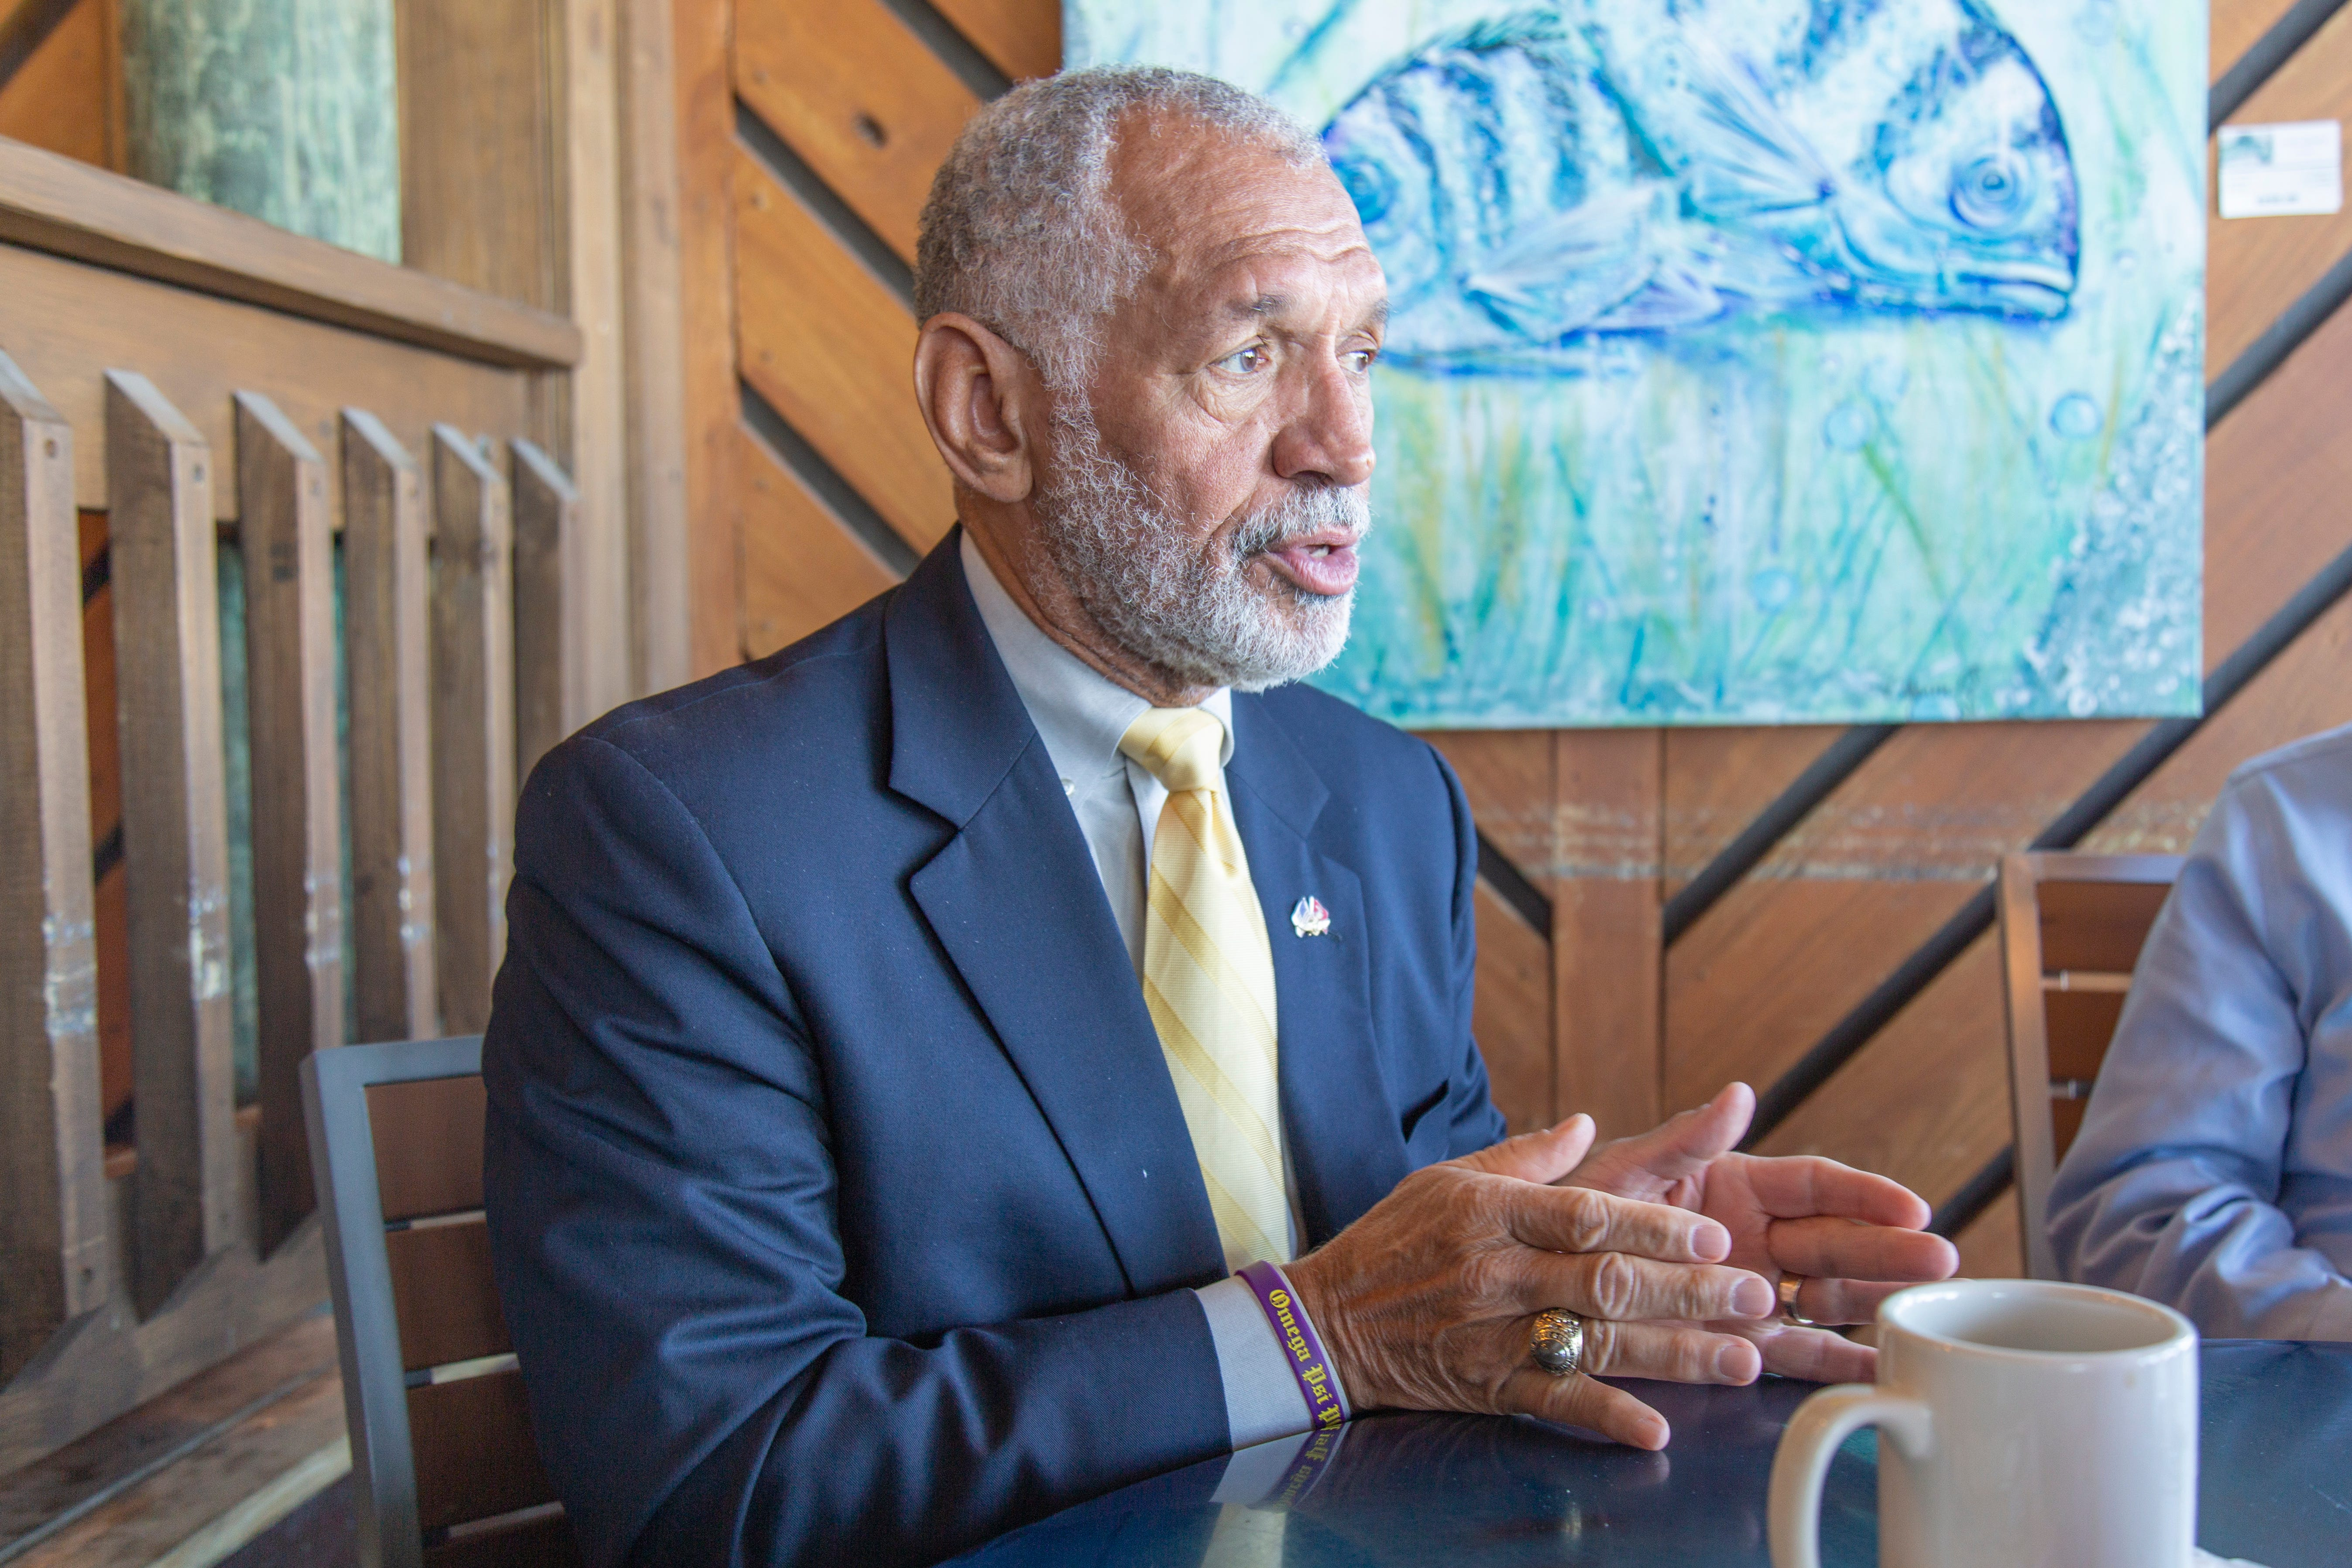 Former NASA Administrator Charlie Bolden speaks with Sen. Bill Nelson at Port Canaveral's Grills Seafood Deck & Tiki Bar on Wednesday, Oct. 31, 2018.